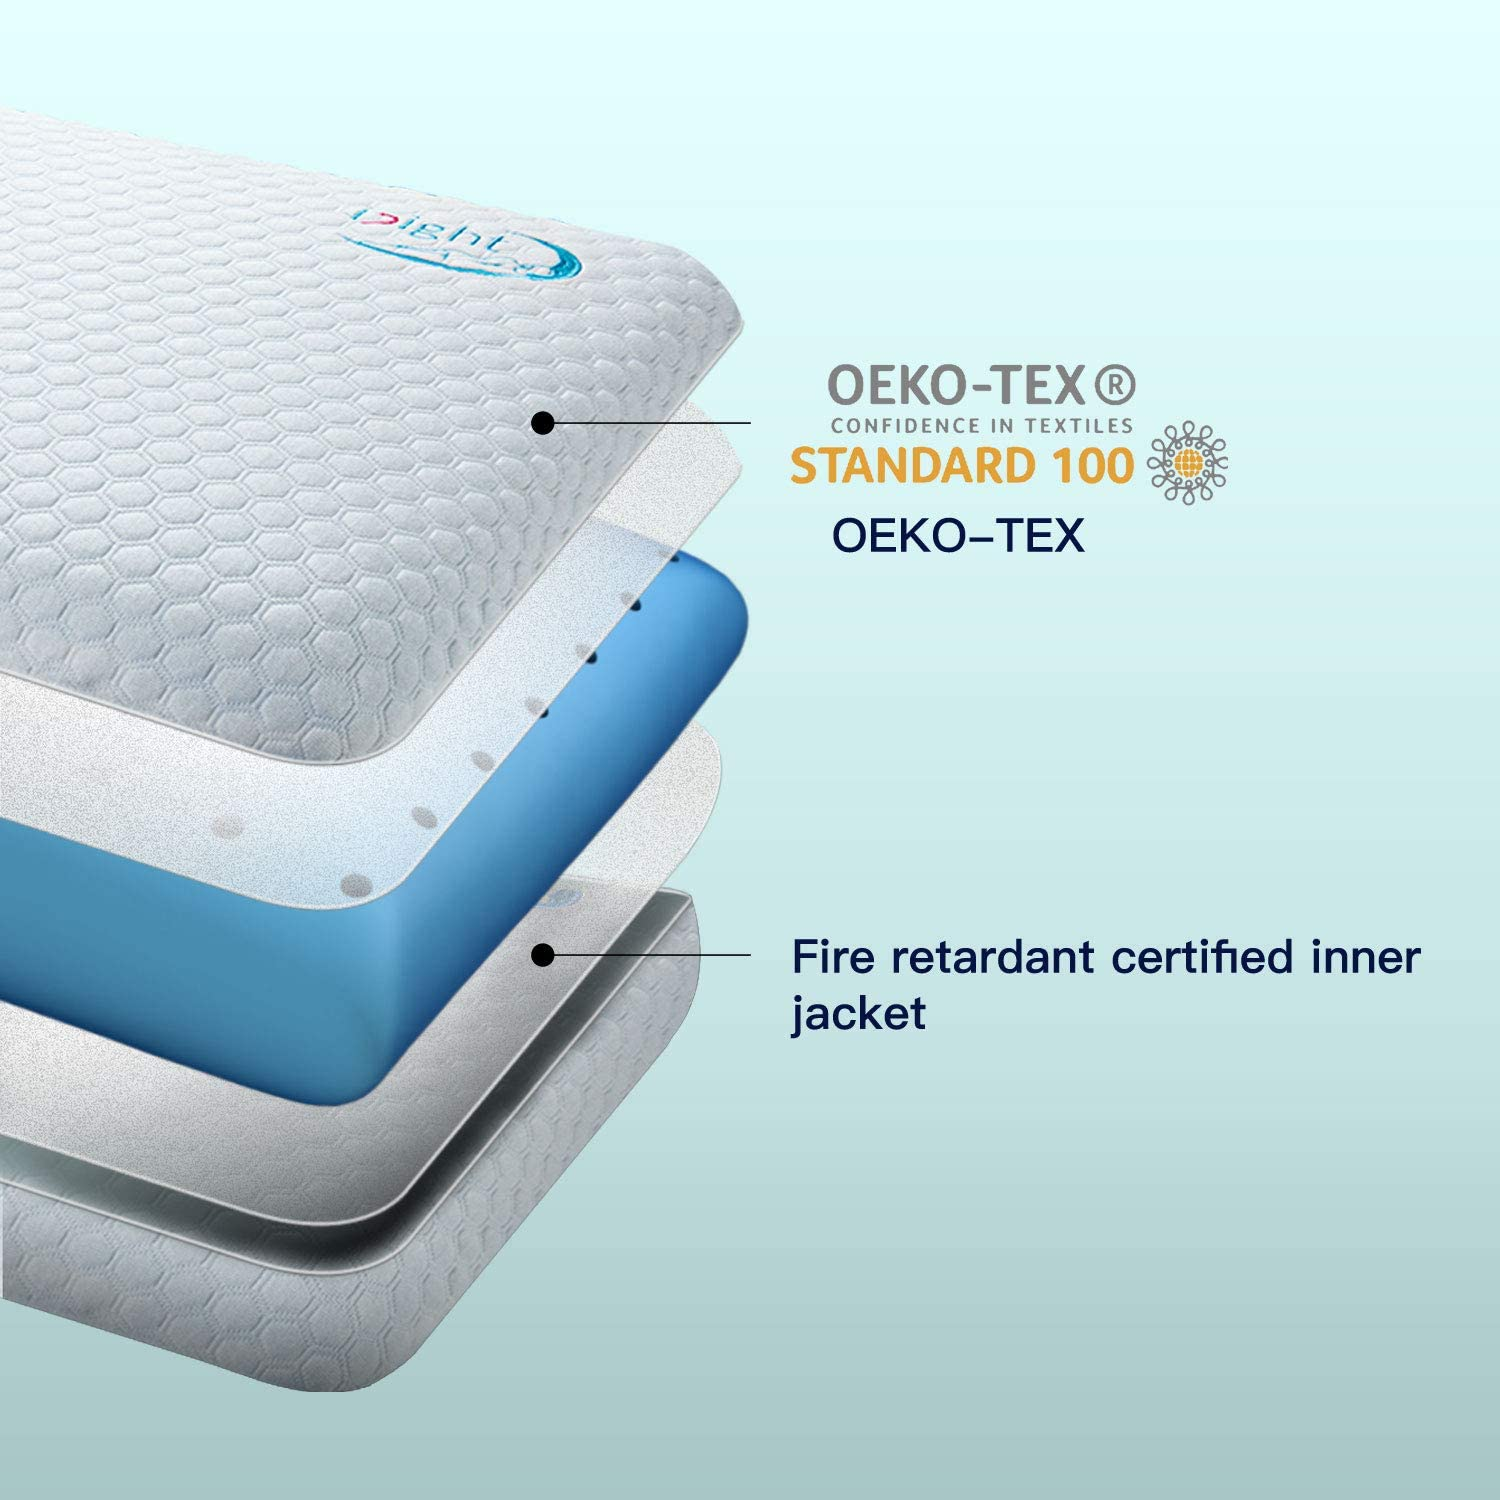 White Pillow for Side Back Stomach Sleepers inight Memory Foam Pillow Vegan /& Cruelty-Free Ventilated Pillows for Sleeping Oeko-TEX Certified